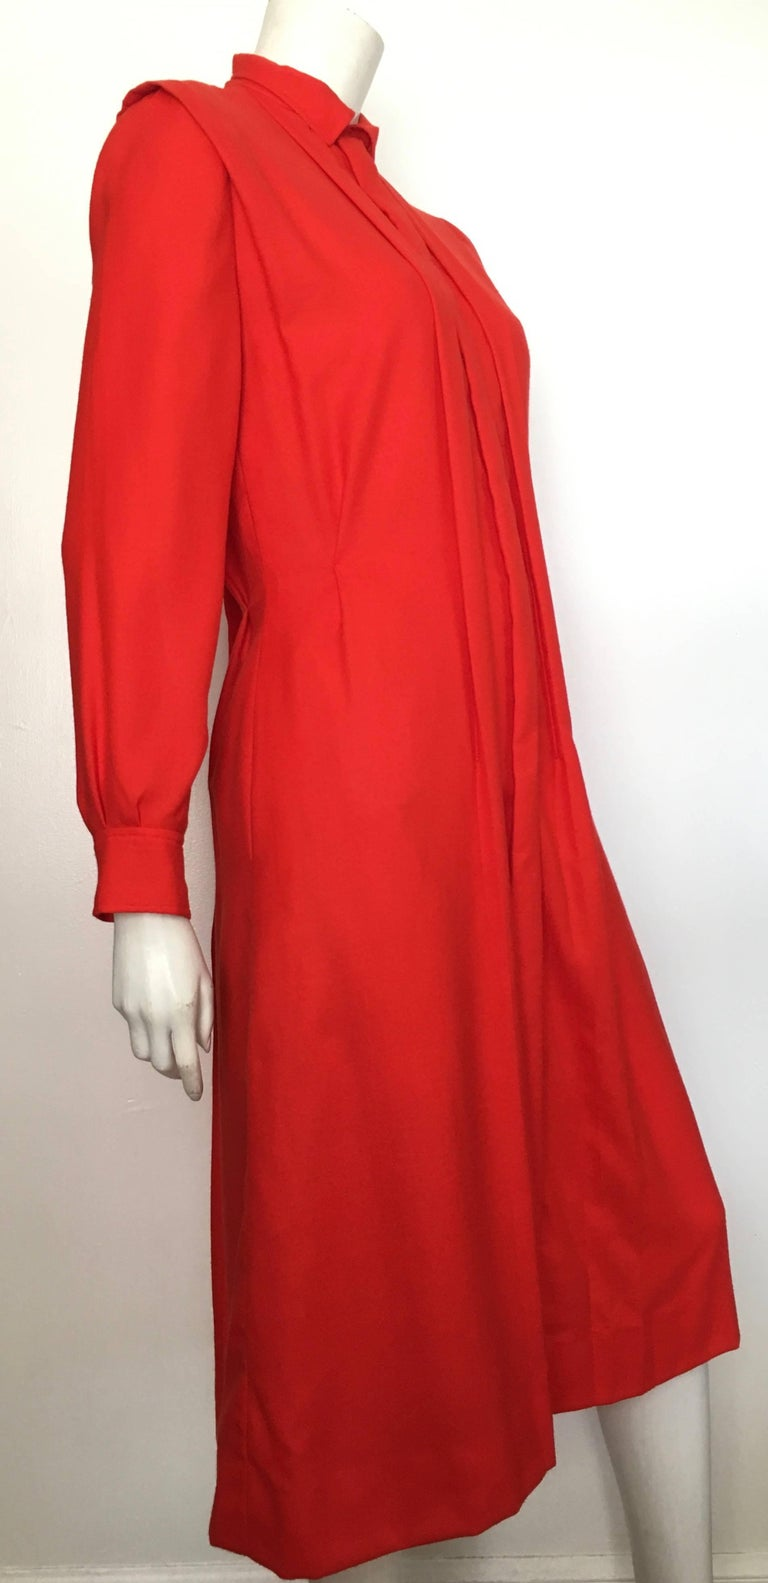 Courreges Red Wool Long Sleeve Dress with Pockets, 1980s  For Sale 8